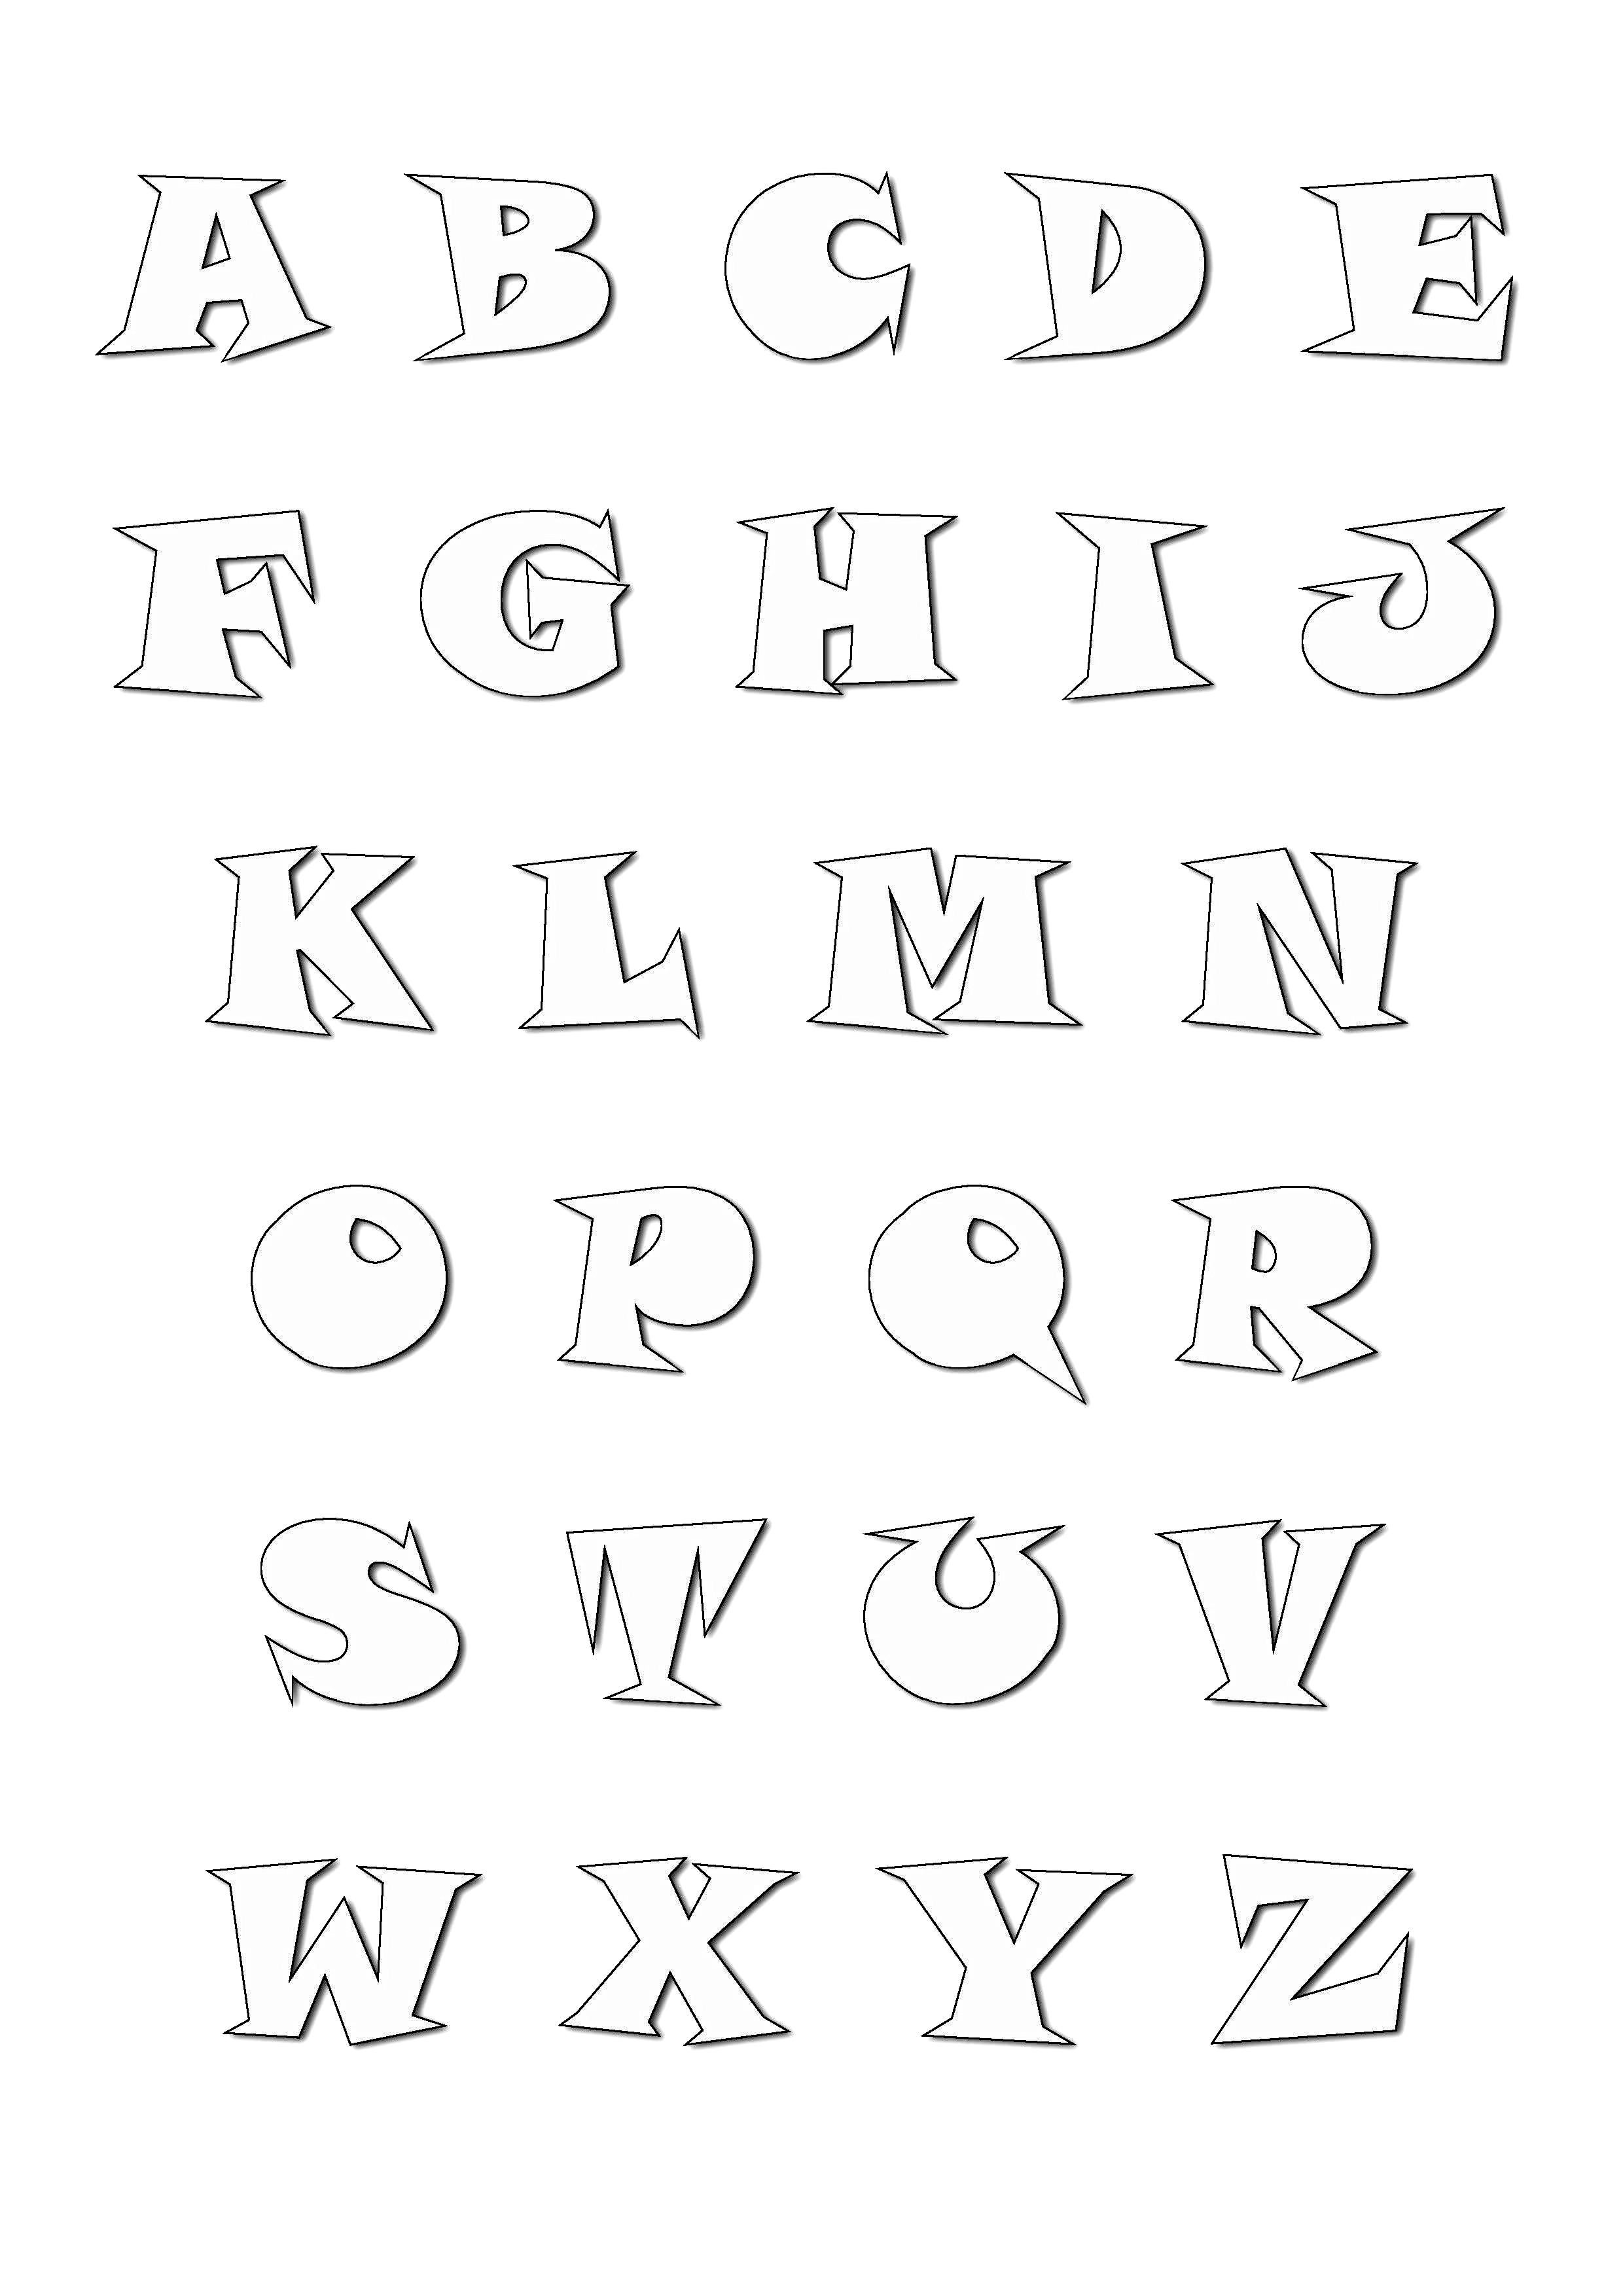 Alphabet cartoon style - Alphabet Coloring pages for kids ...